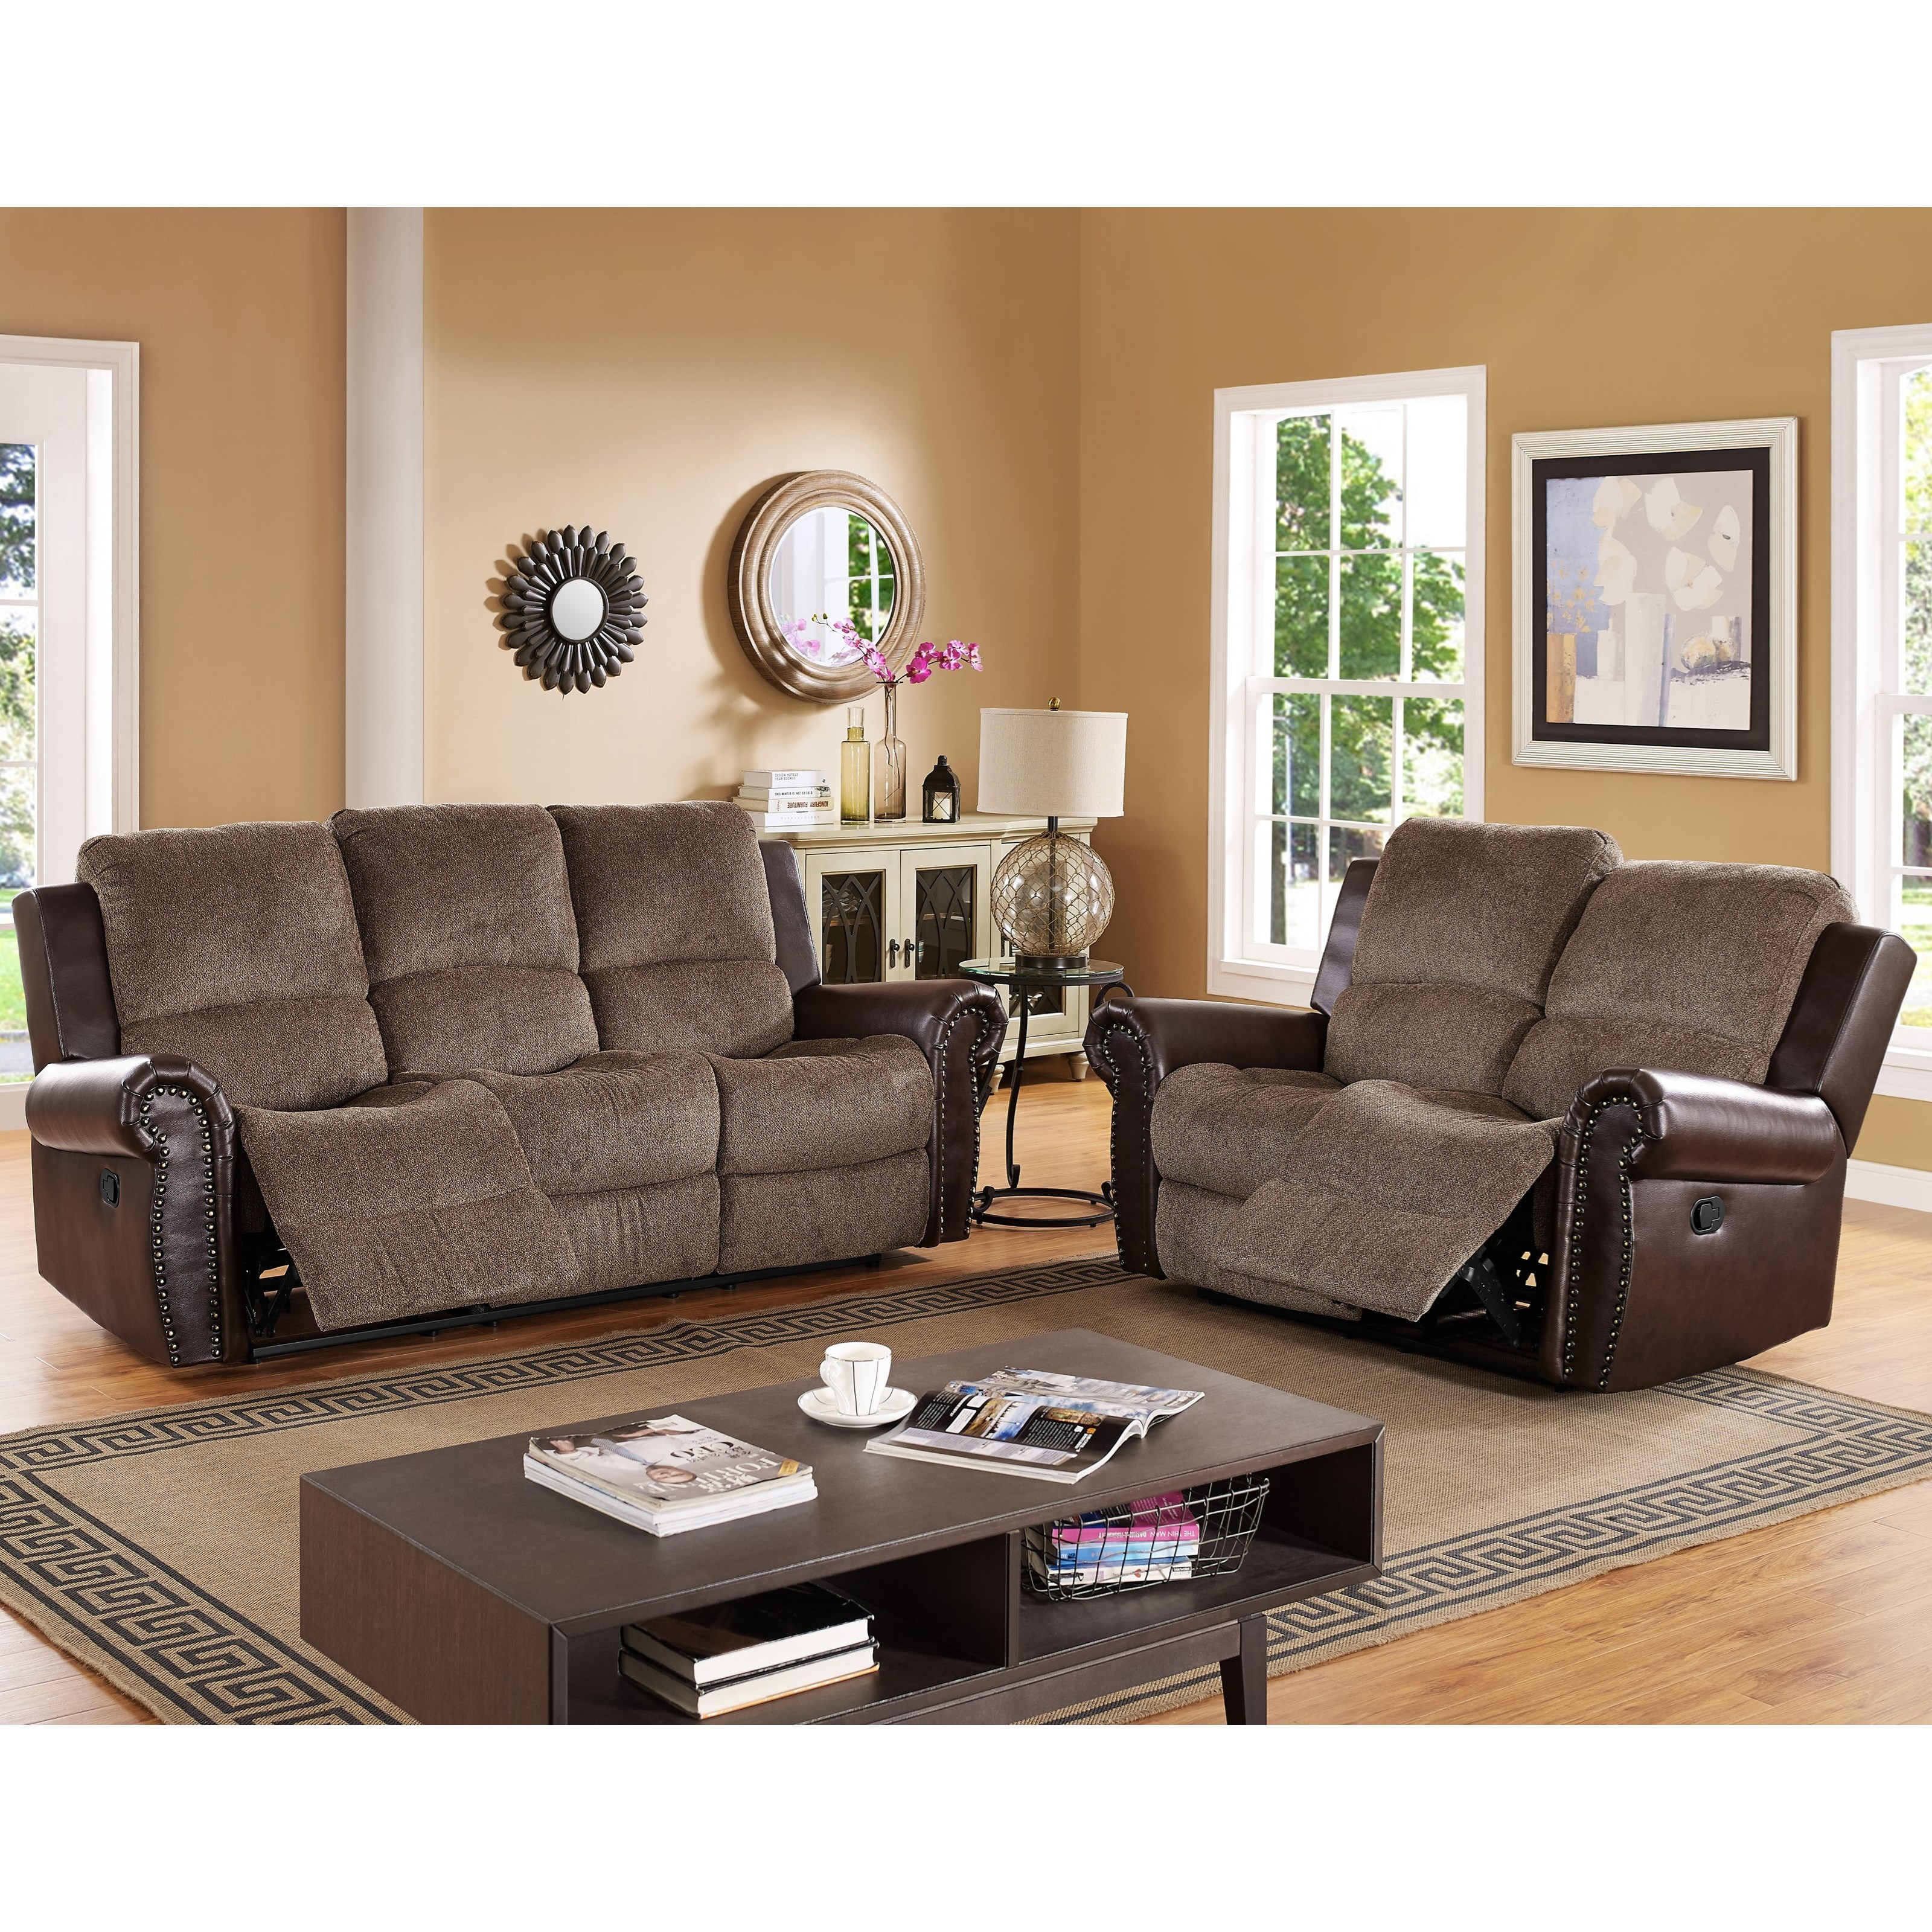 New Classic Callahan Traditional Power Reclining Sofa with  : products2Fnewclassic2Fcolor2Fcallahan20223920 2239 30 coc b3 from www.knightfurniture.com size 3200 x 3200 jpeg 2099kB